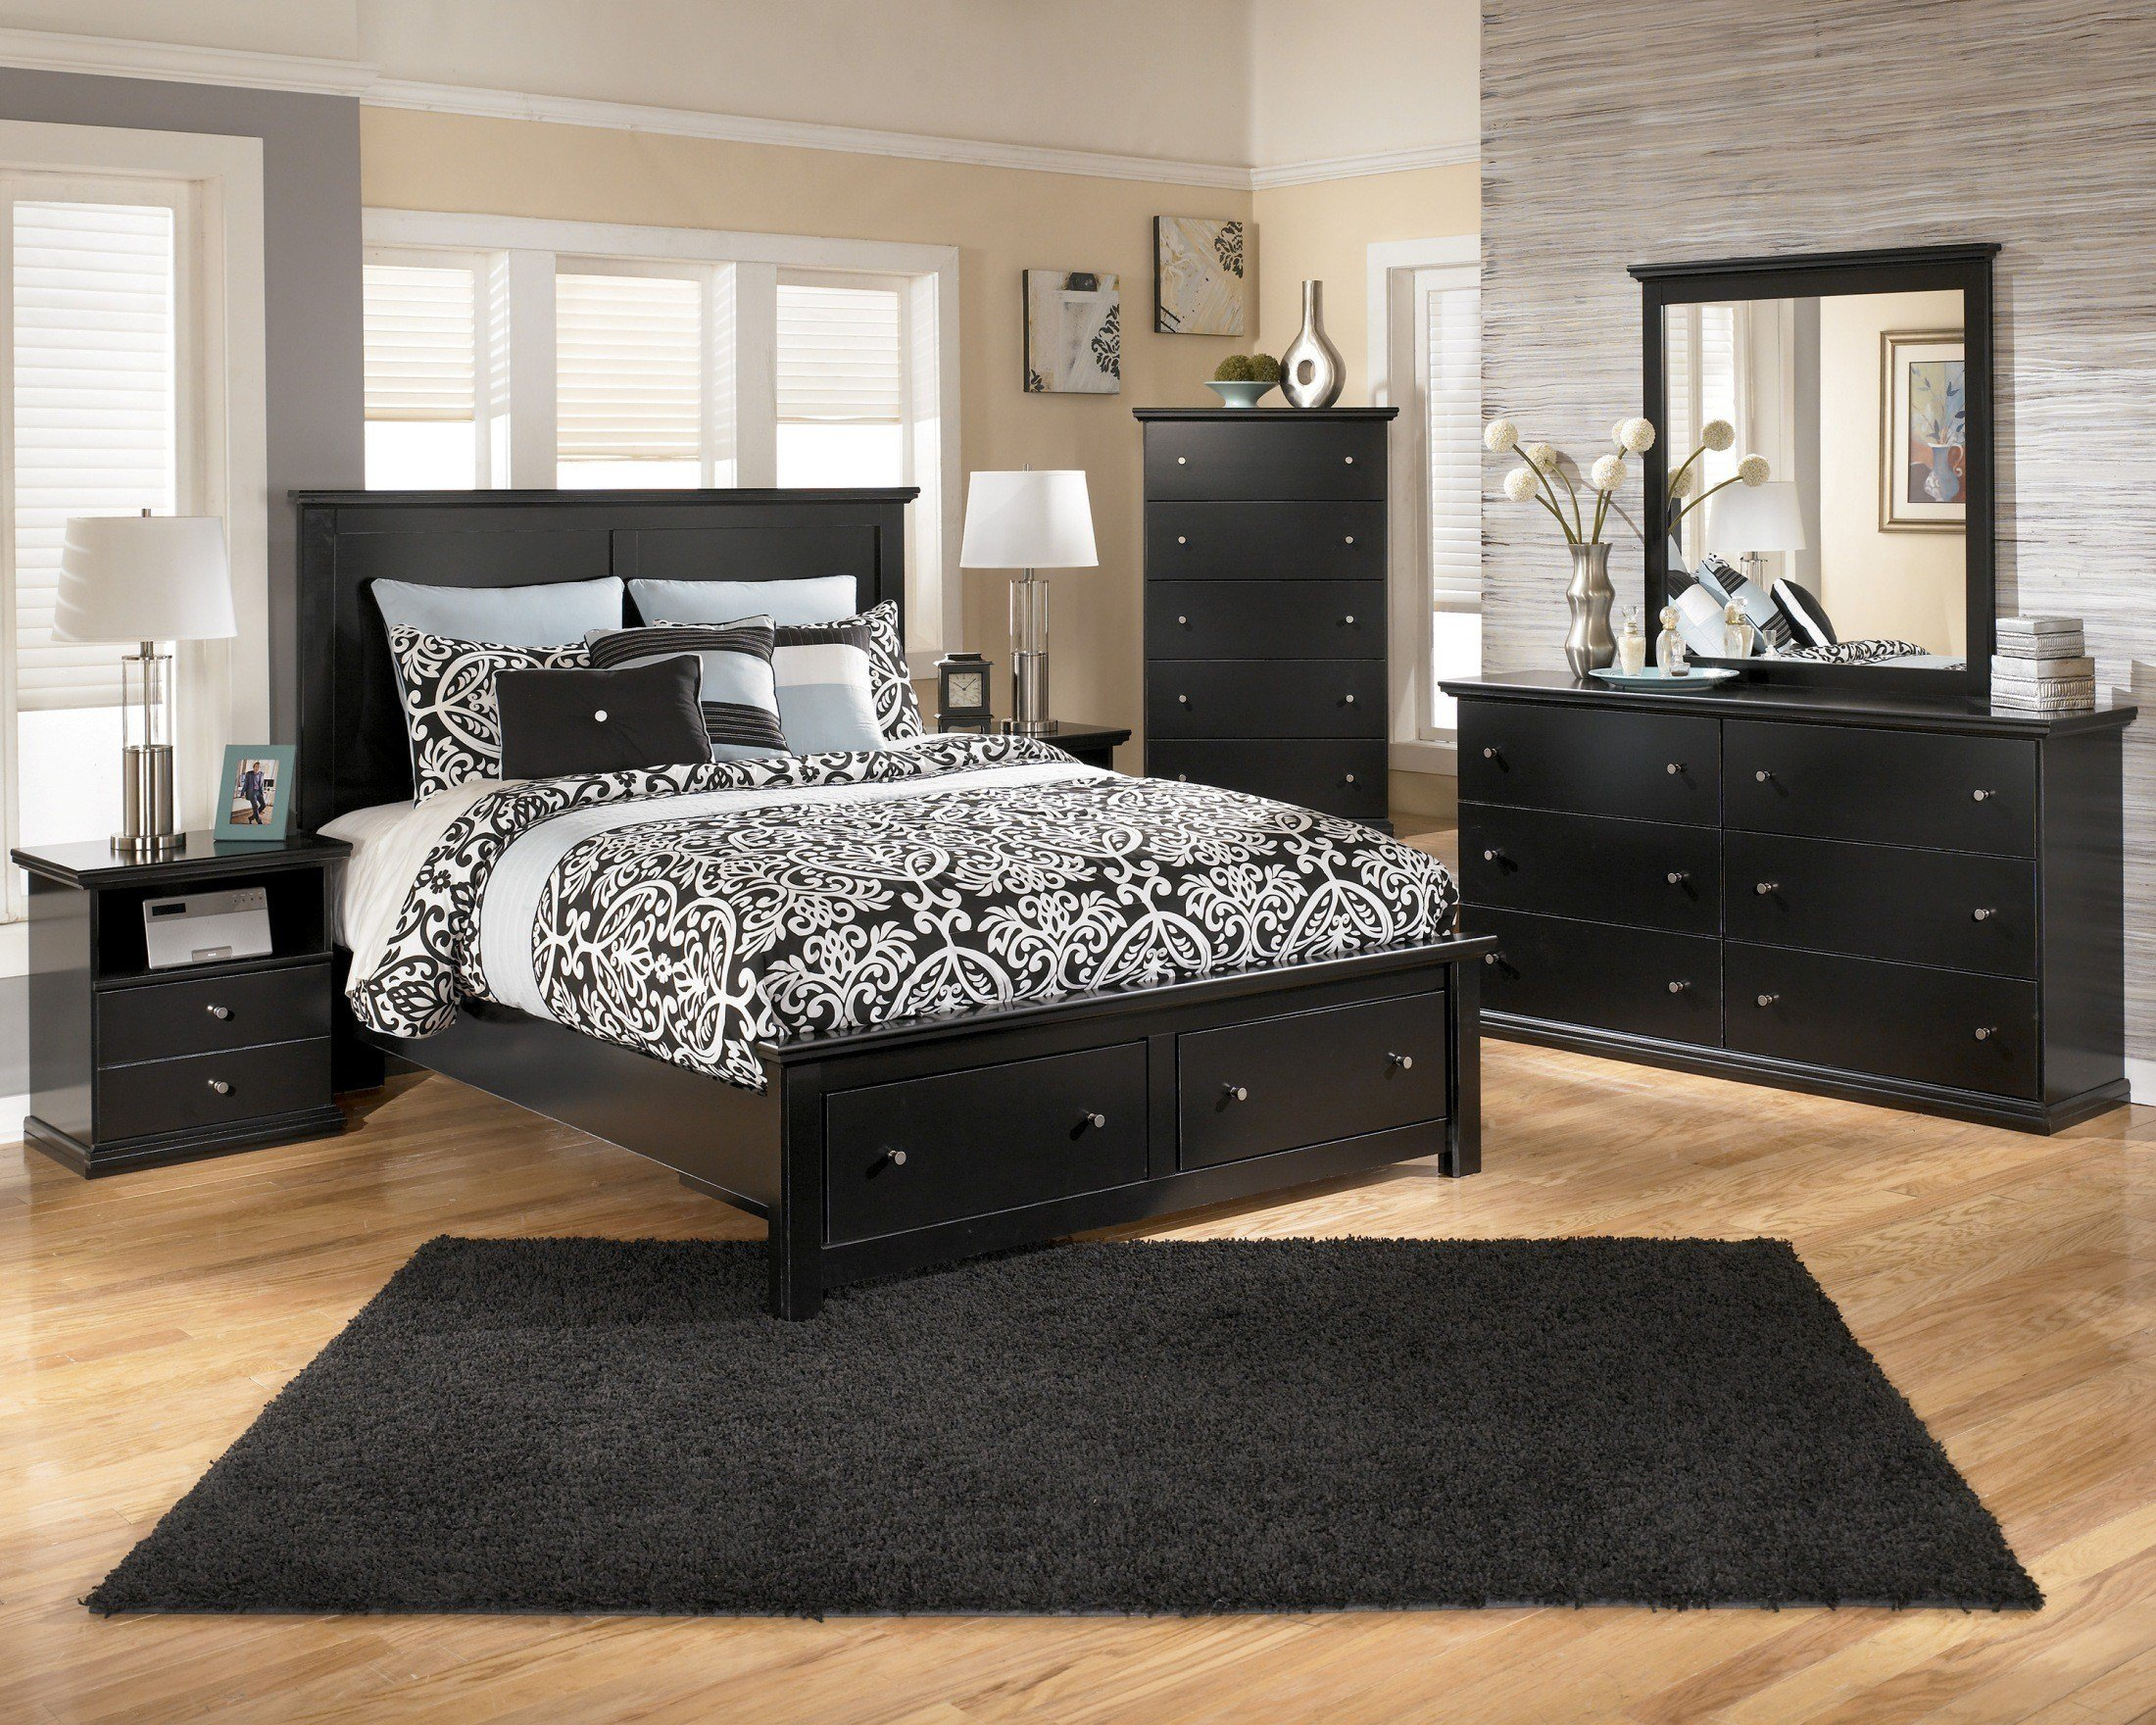 Best Maribel Panel Storage Bedroom Set B138 54S 57 95 B100 13 With Pictures